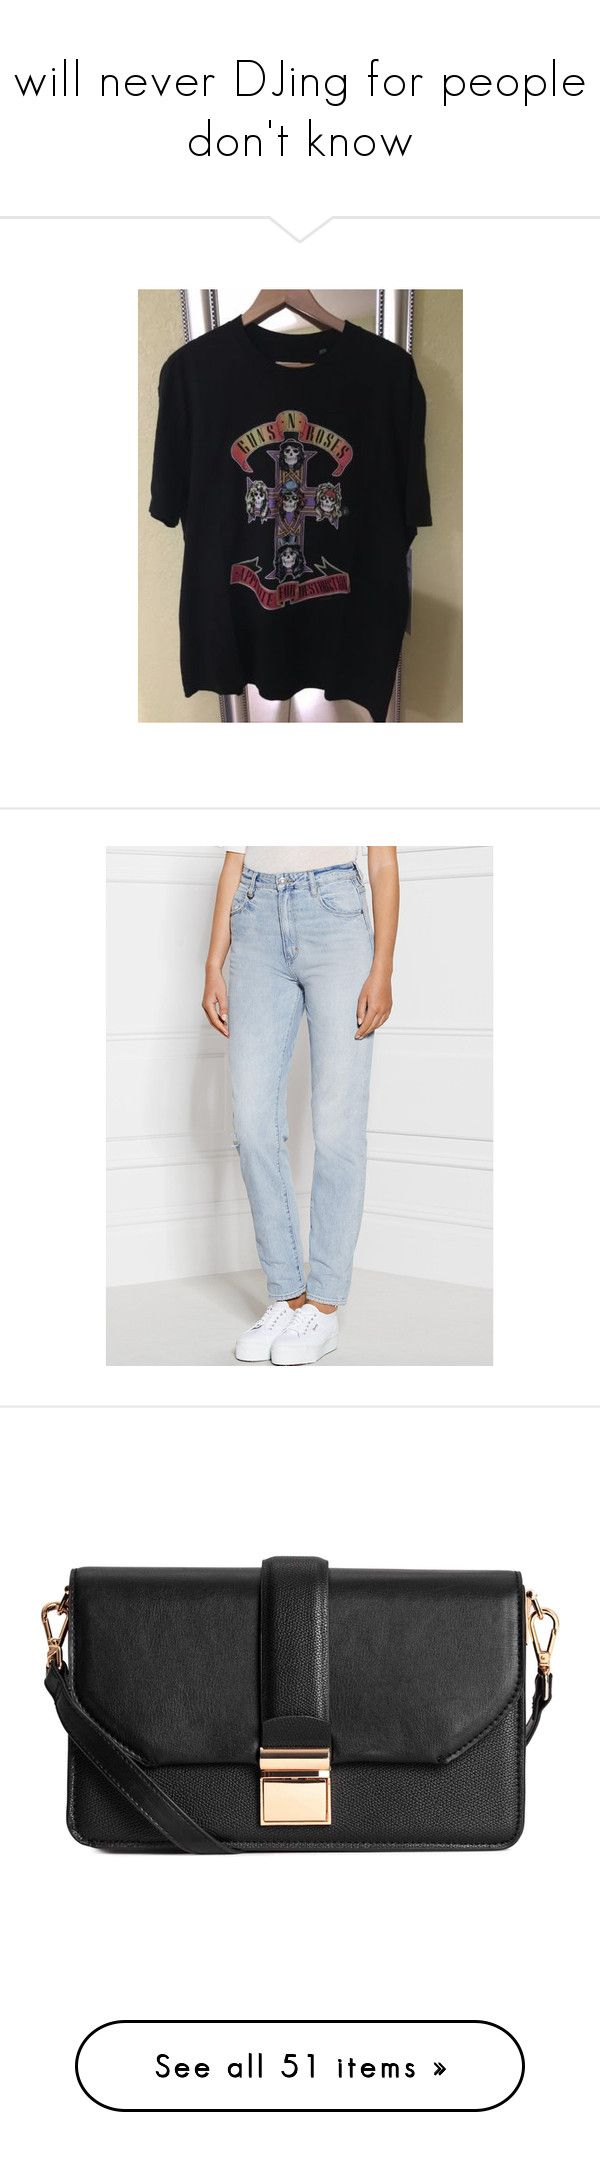 """I will never DJing for people I don't know"" by losageles ❤ liked on Polyvore featuring jeans, melrose blue, destructed jeans, neuw jeans, 5 pocket jeans, ripped blue jeans, high waisted blue jeans, shoes, sneakers and parchment"